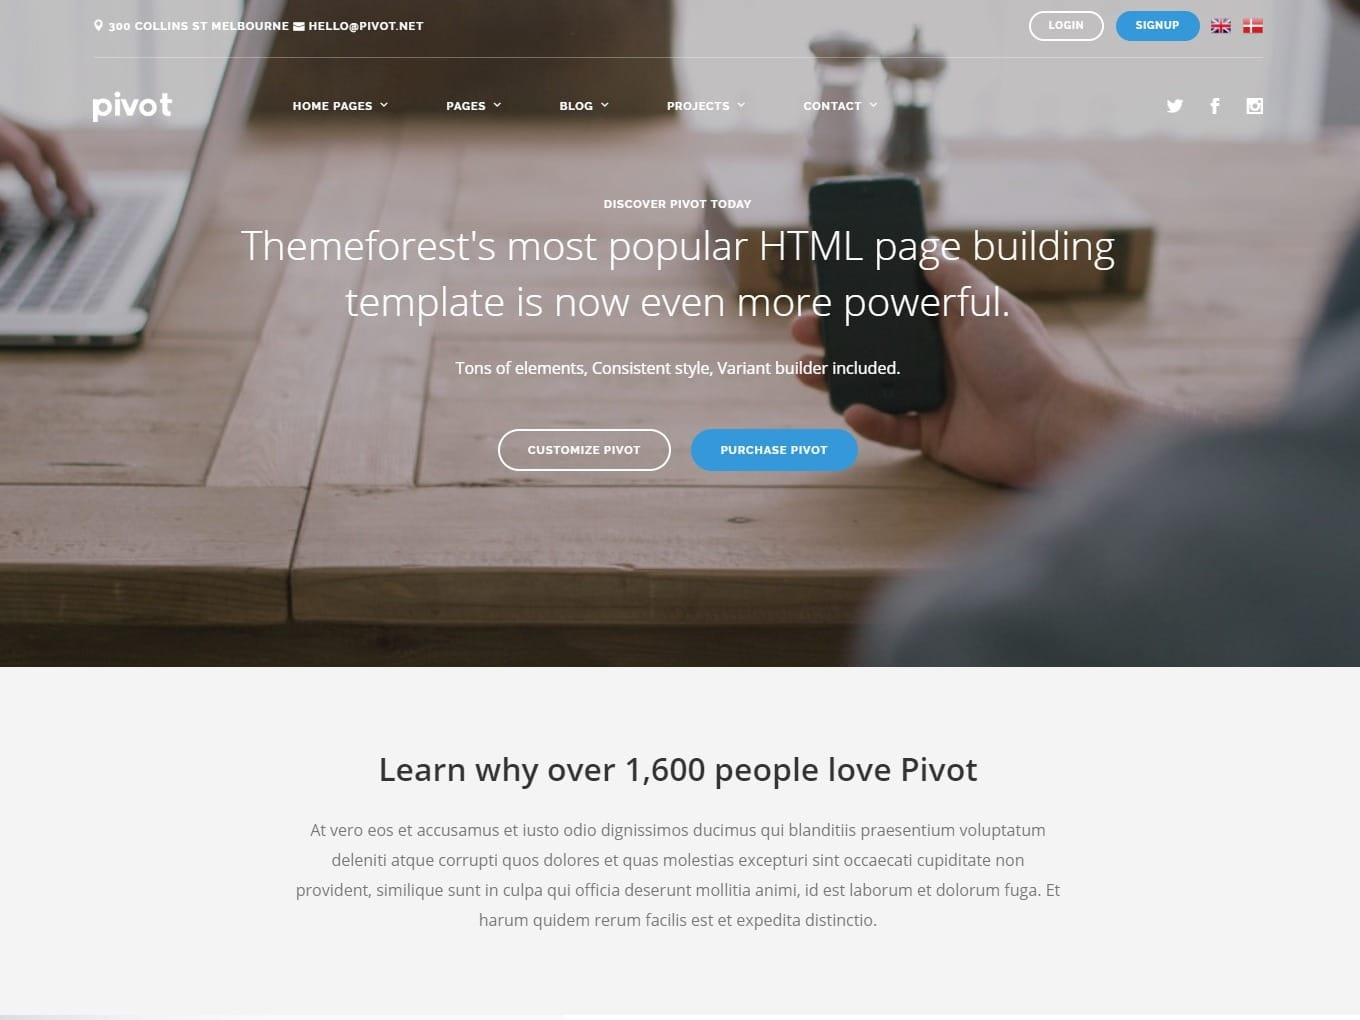 pivot-html-landing-page-templates-pitchdeck-design-services -for-startups